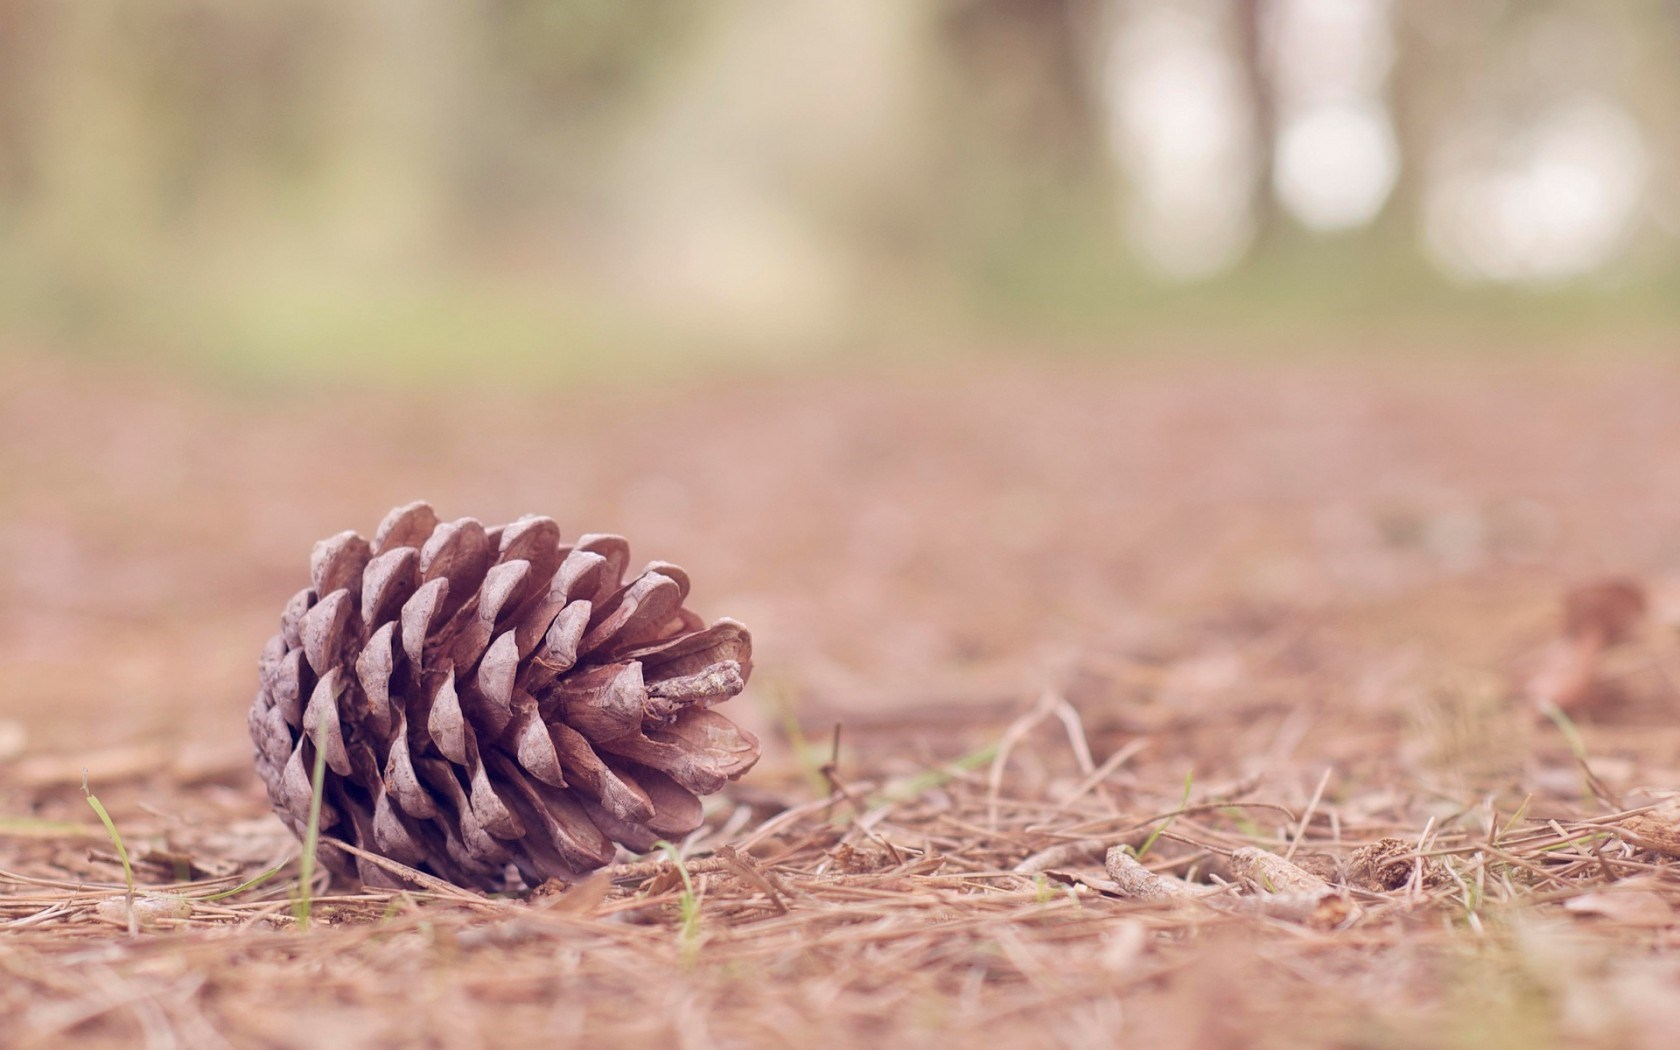 Nature pine cone wallpaper 1680x1050 31141 for Pinecone wallpaper